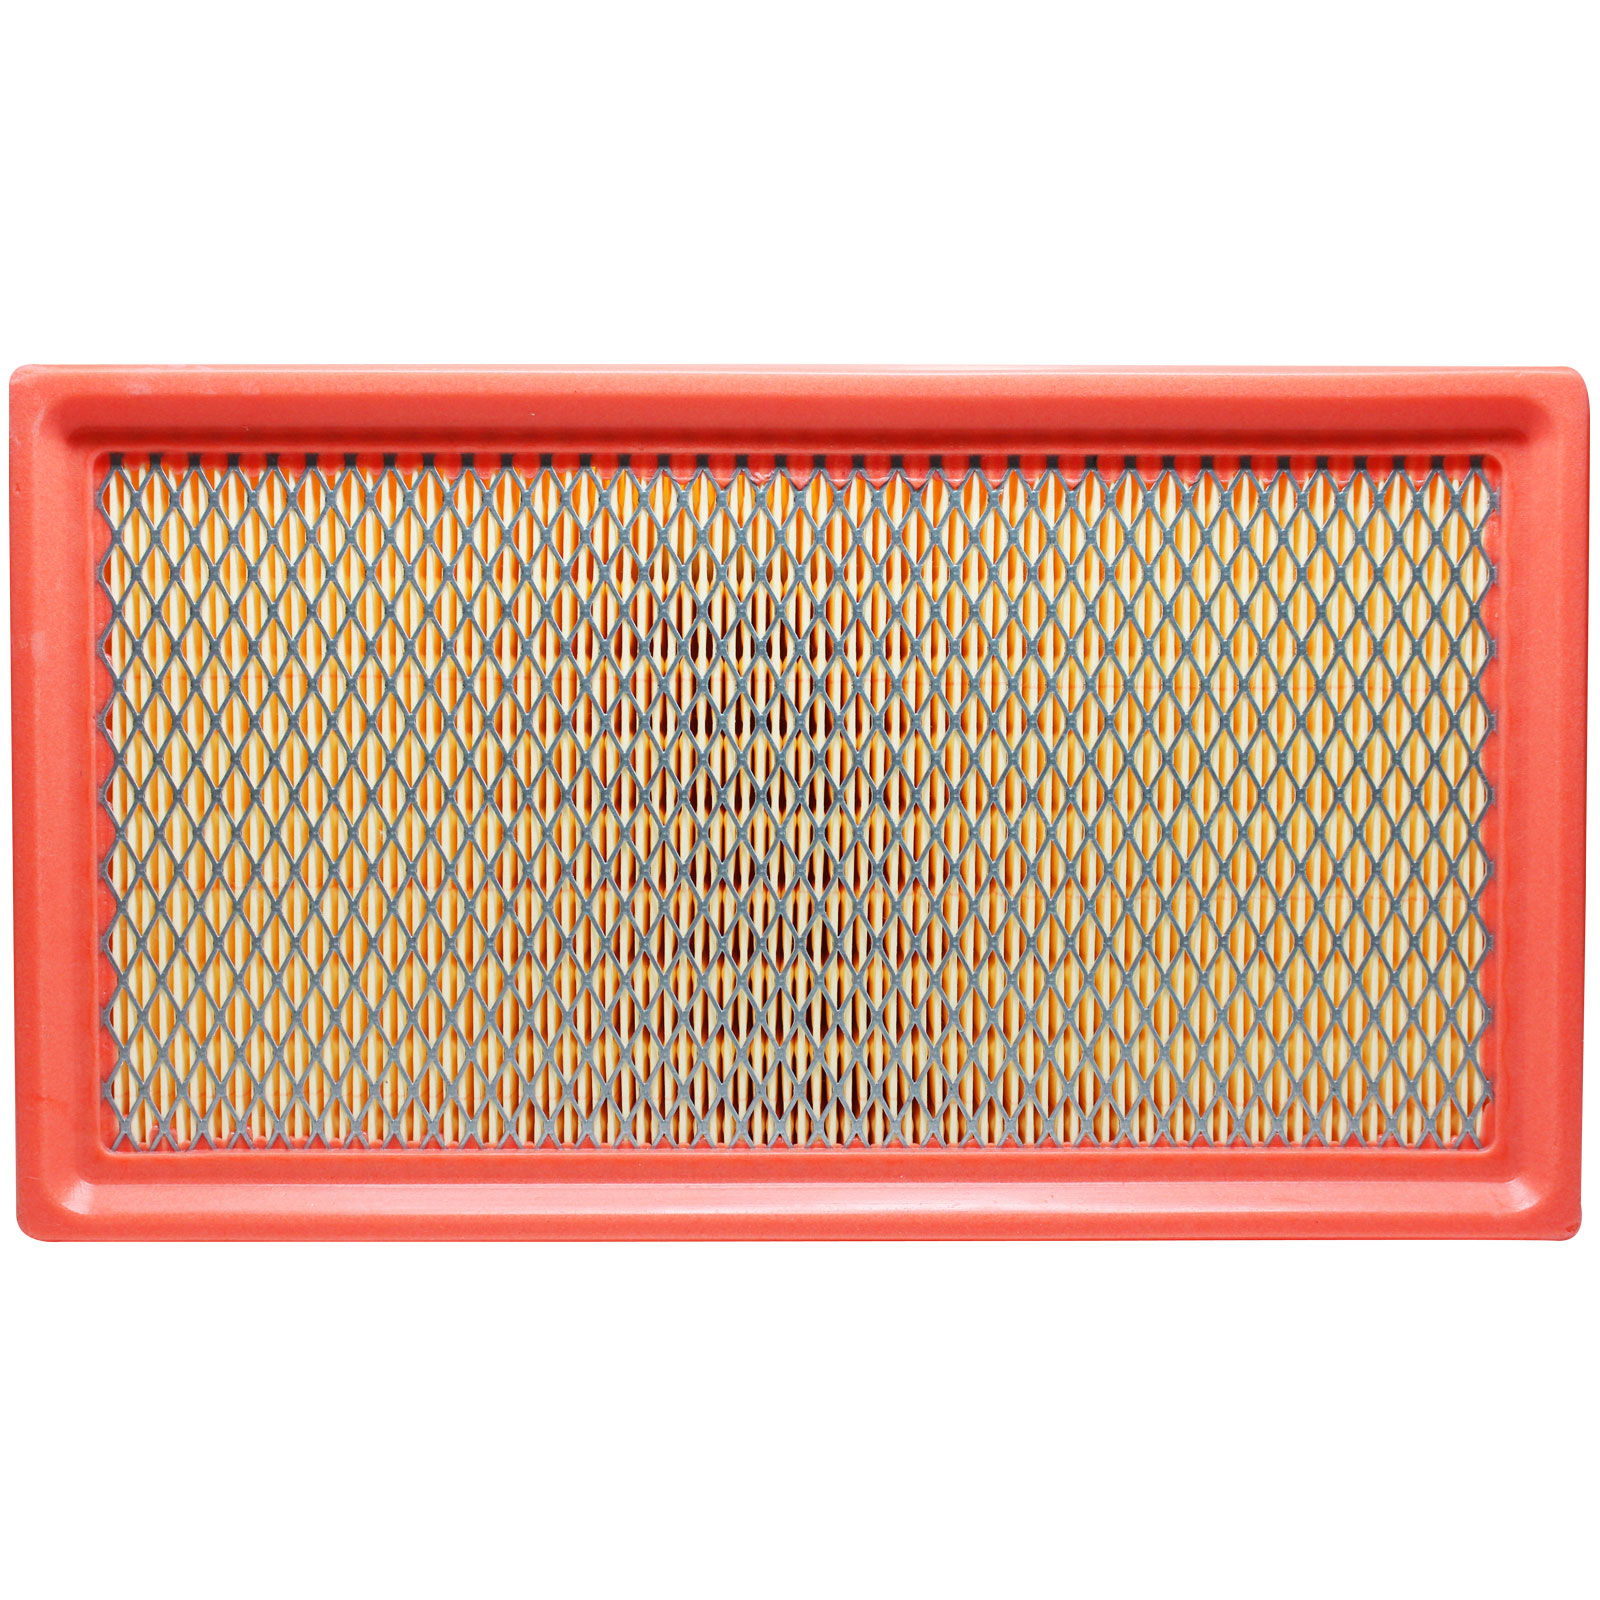 hight resolution of replacement engine air filter for 2013 mazda cx 9 v6 3 7 car automotive panel filter aca 10242 walmart com